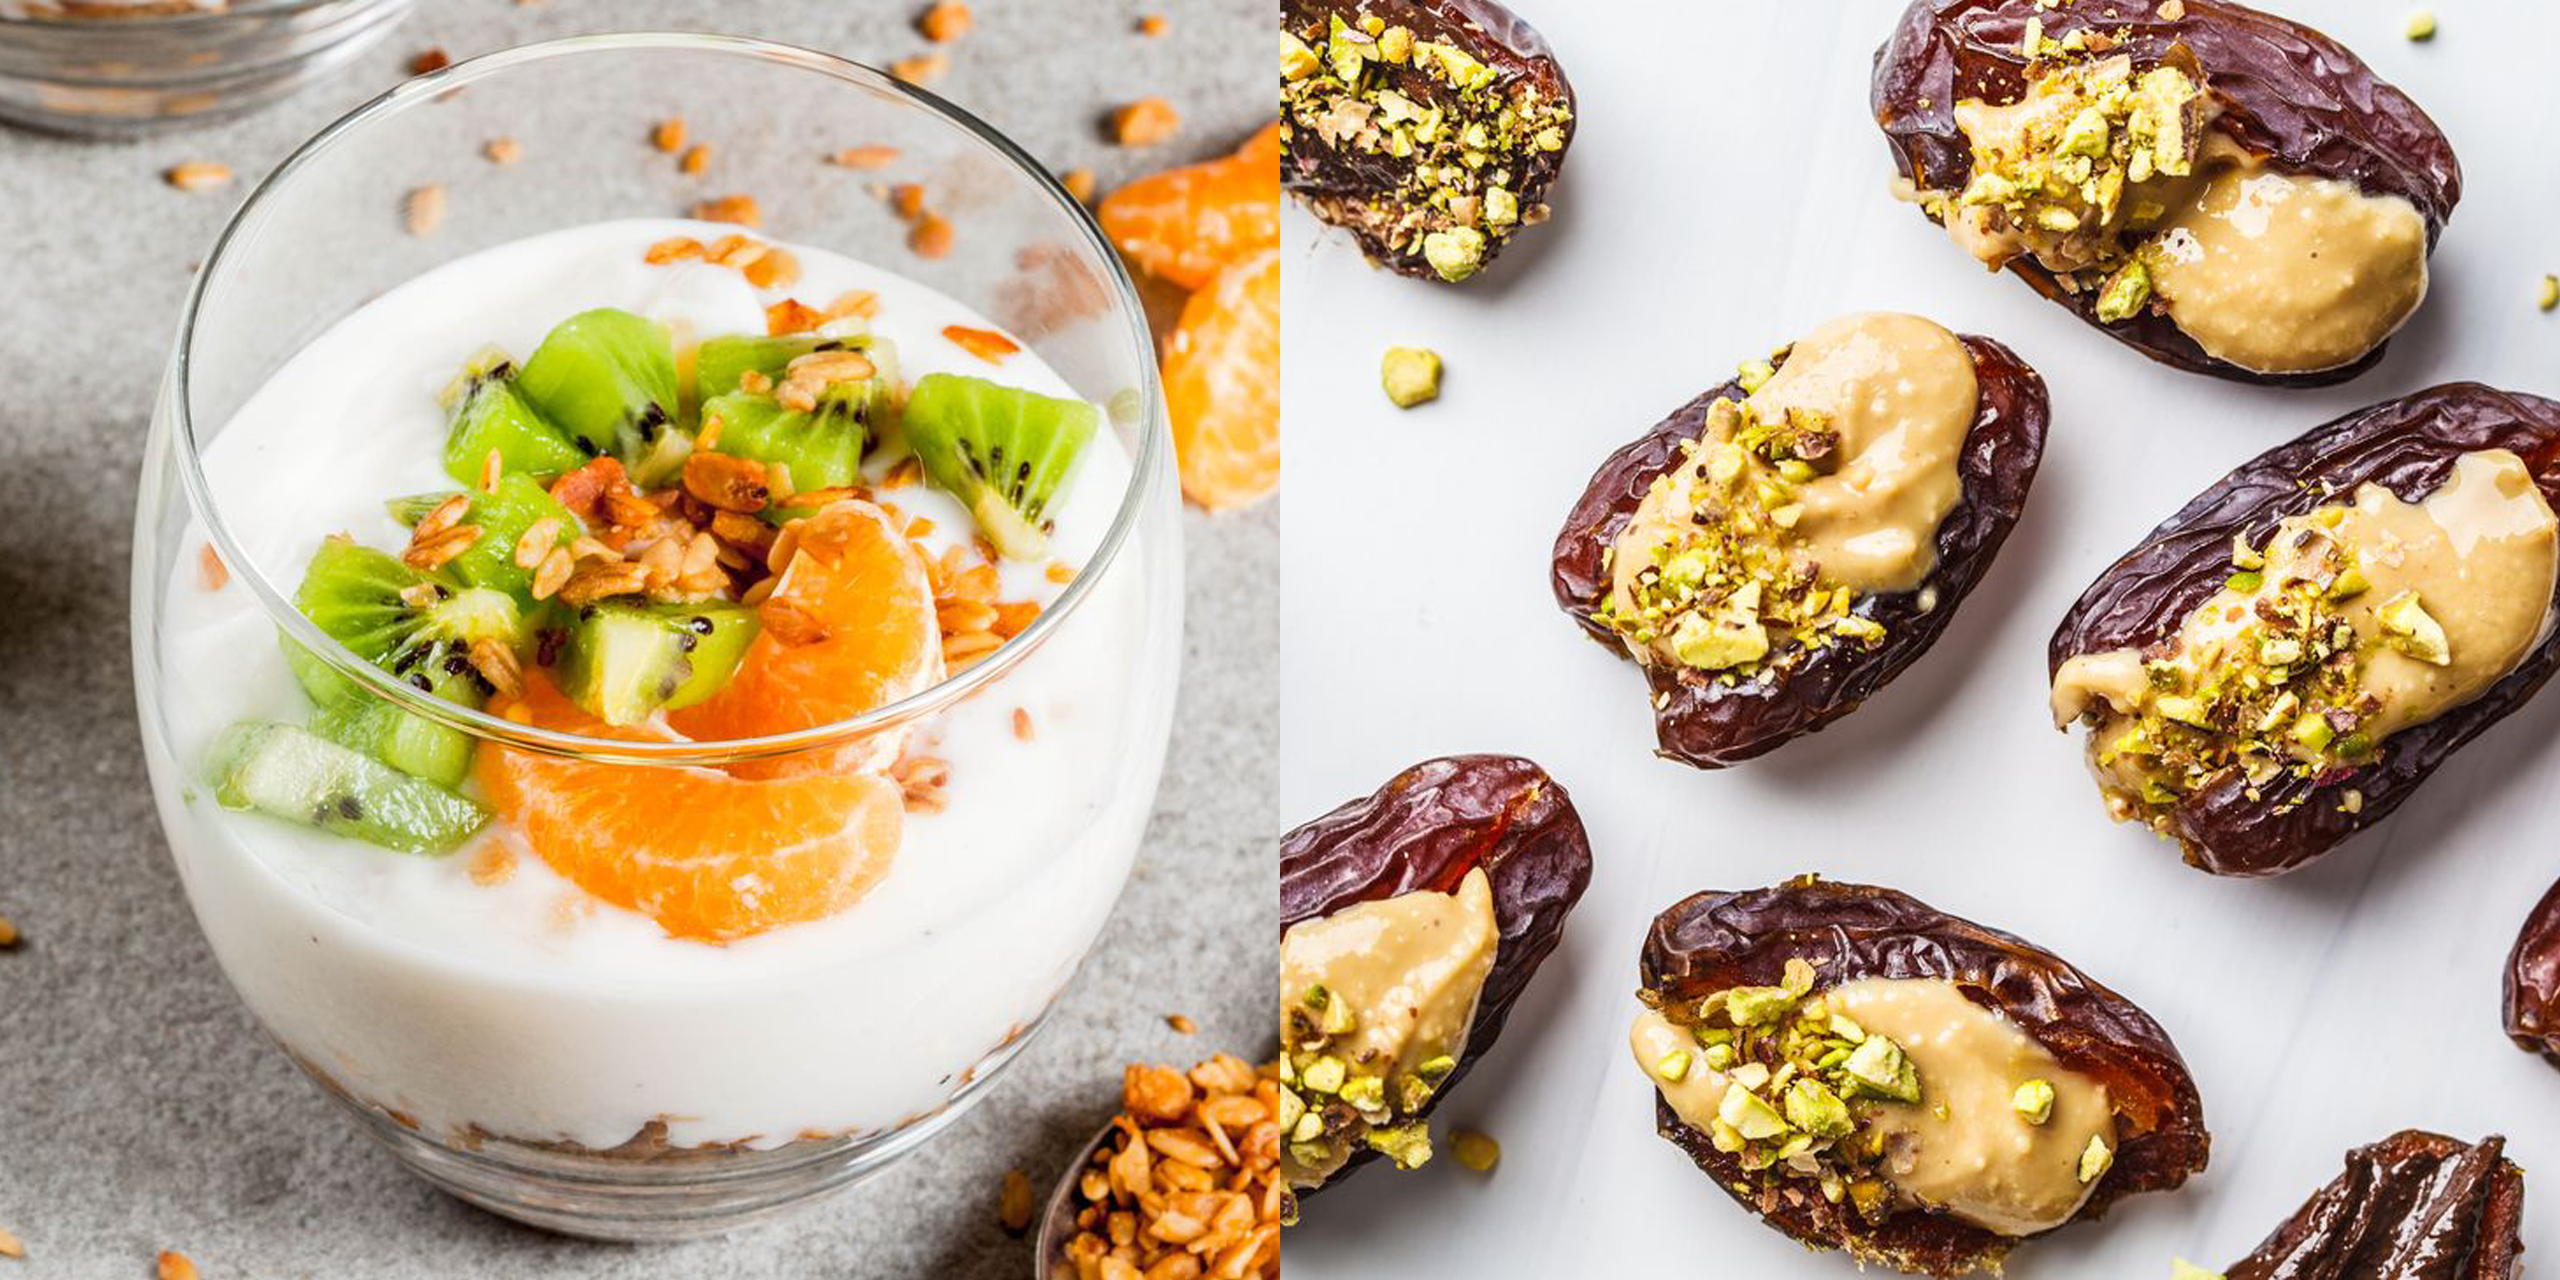 30 Healthy Snacks That Will Satisfy When a Craving Strikes, According to Dietitians